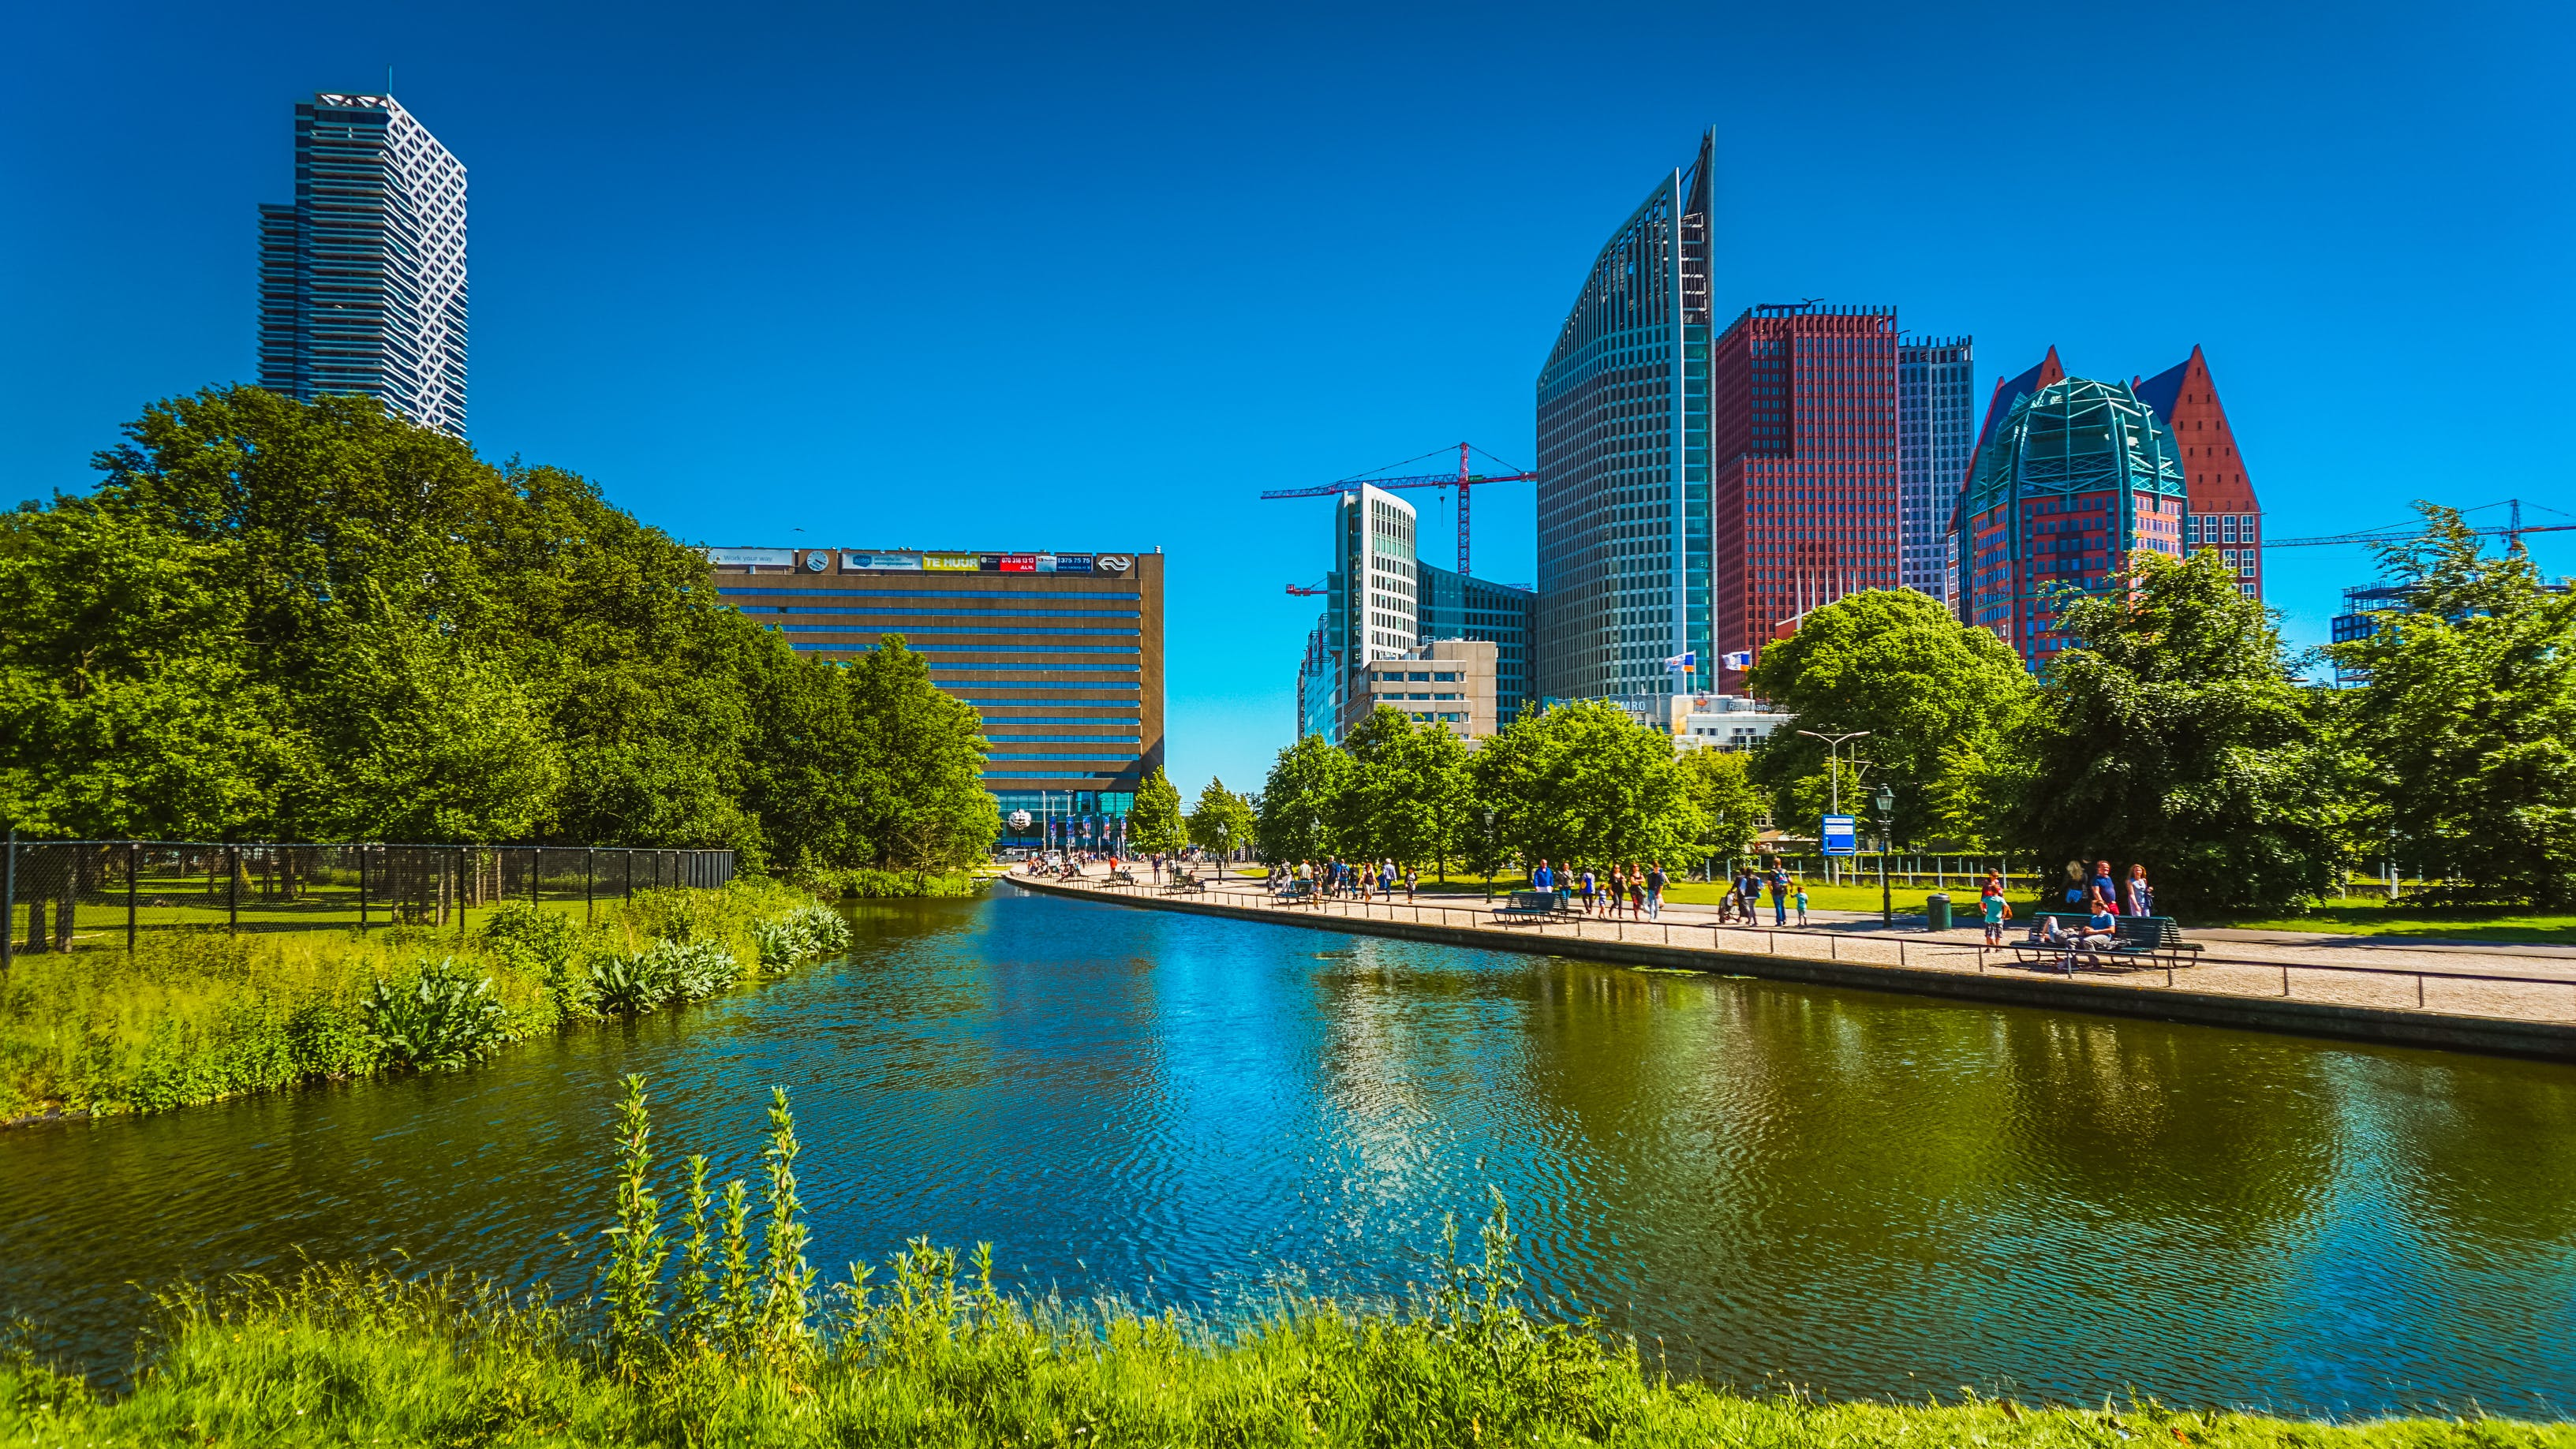 Free stock photo of city-challenge, cityscape, den haag, Holland